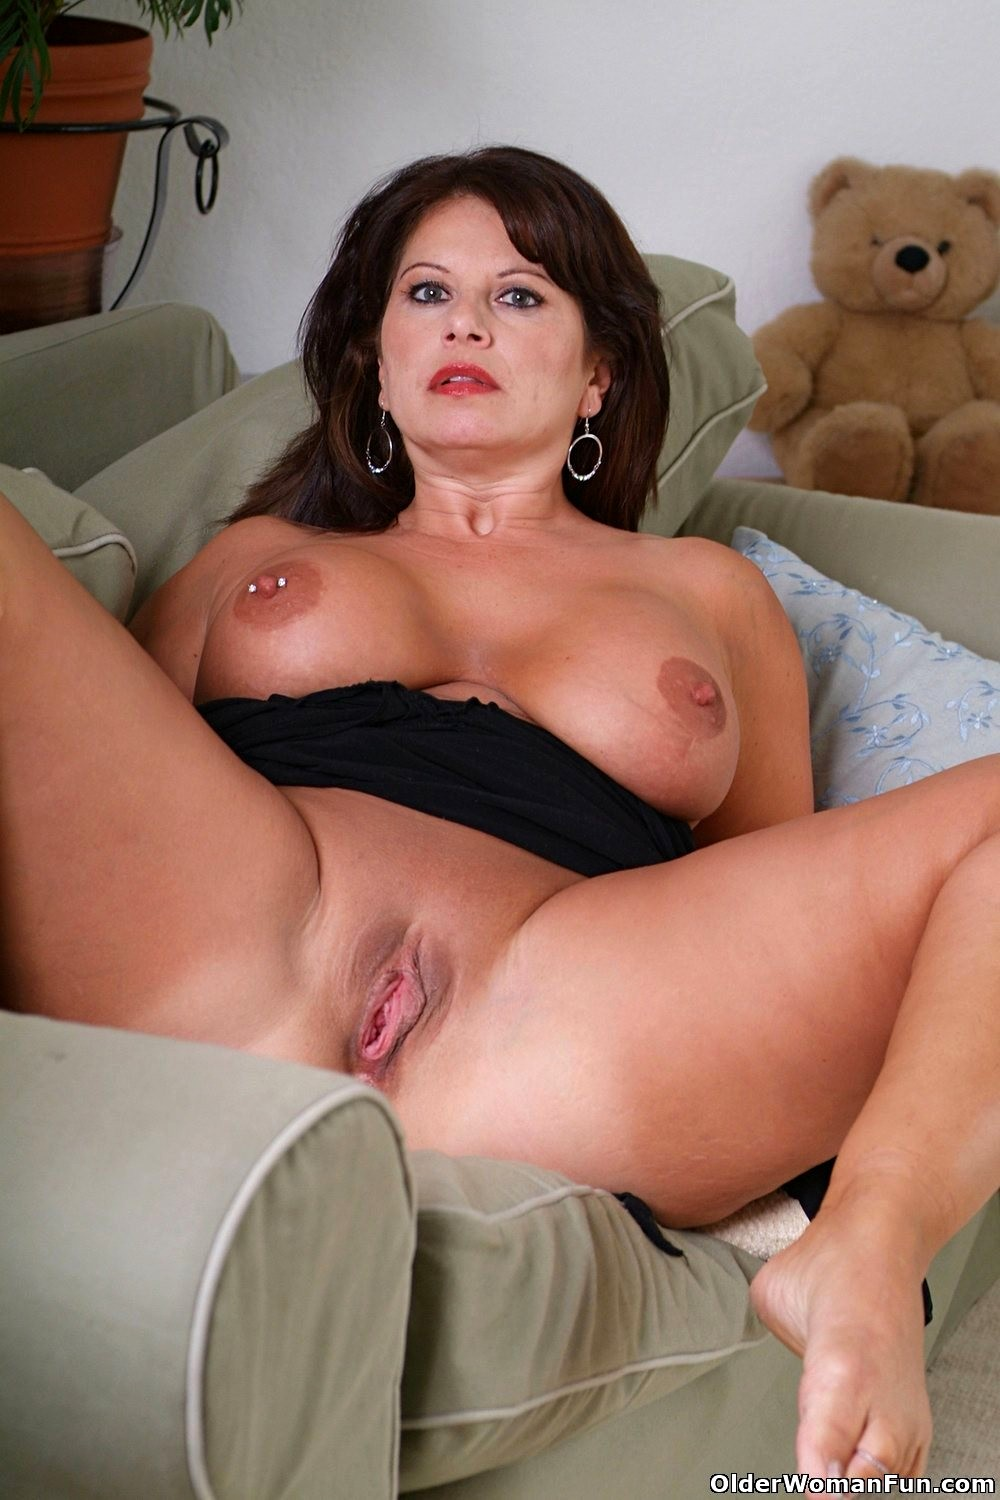 fun woman fucking